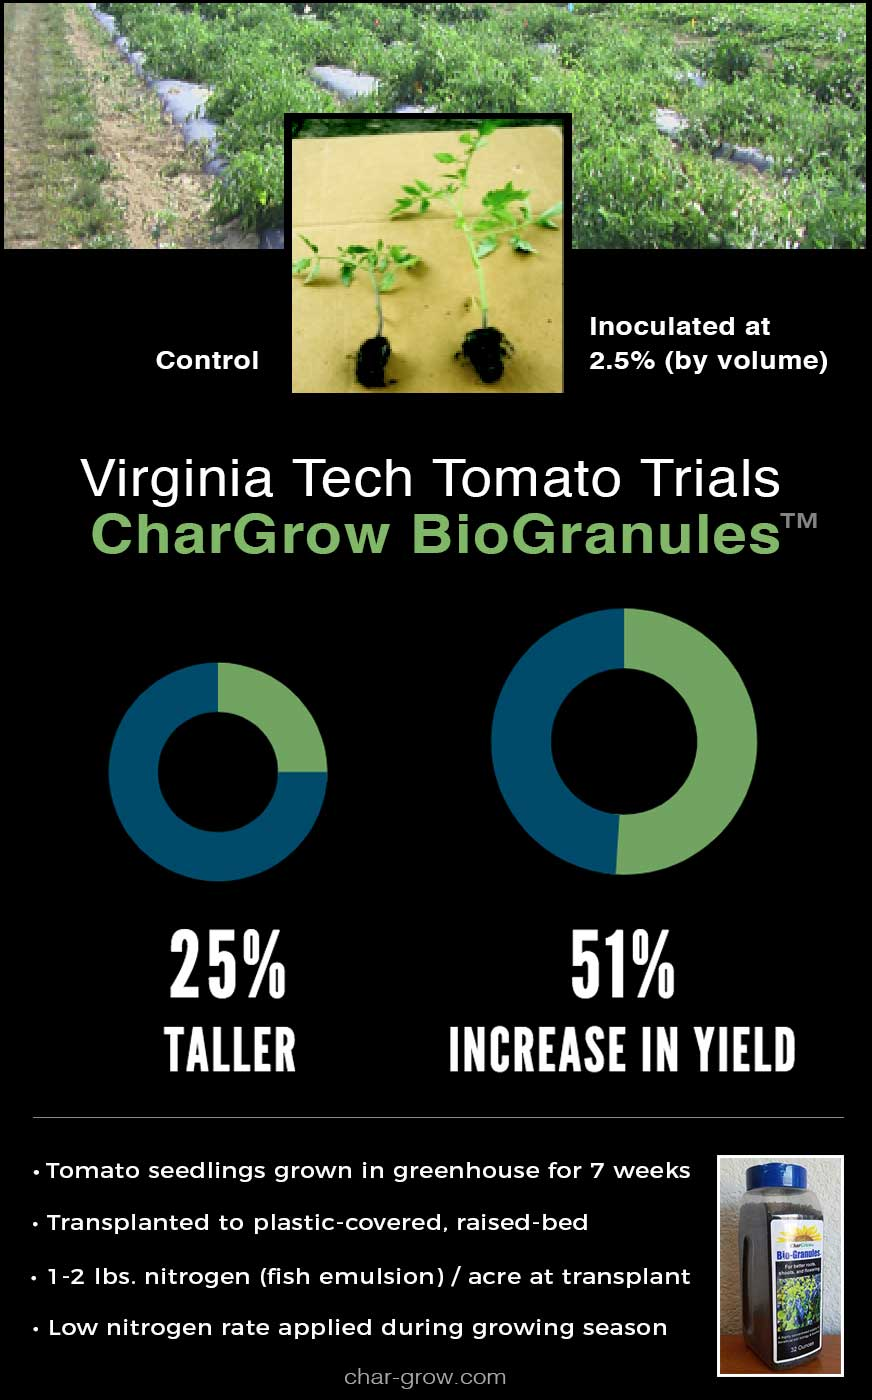 Tomato growing trials results at Virginia Tech poster